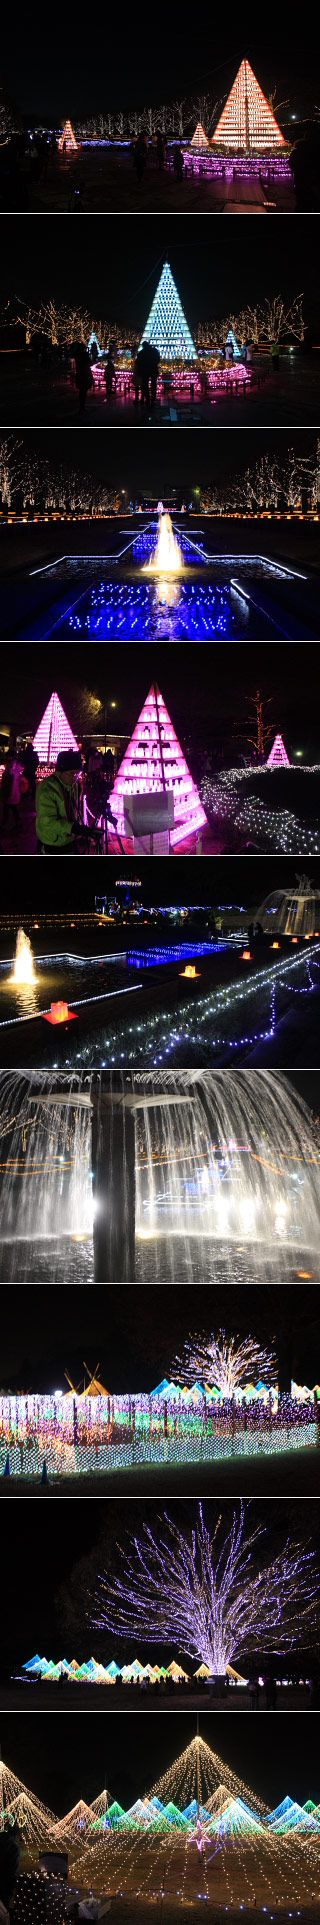 Showa Kinen Park Illumination